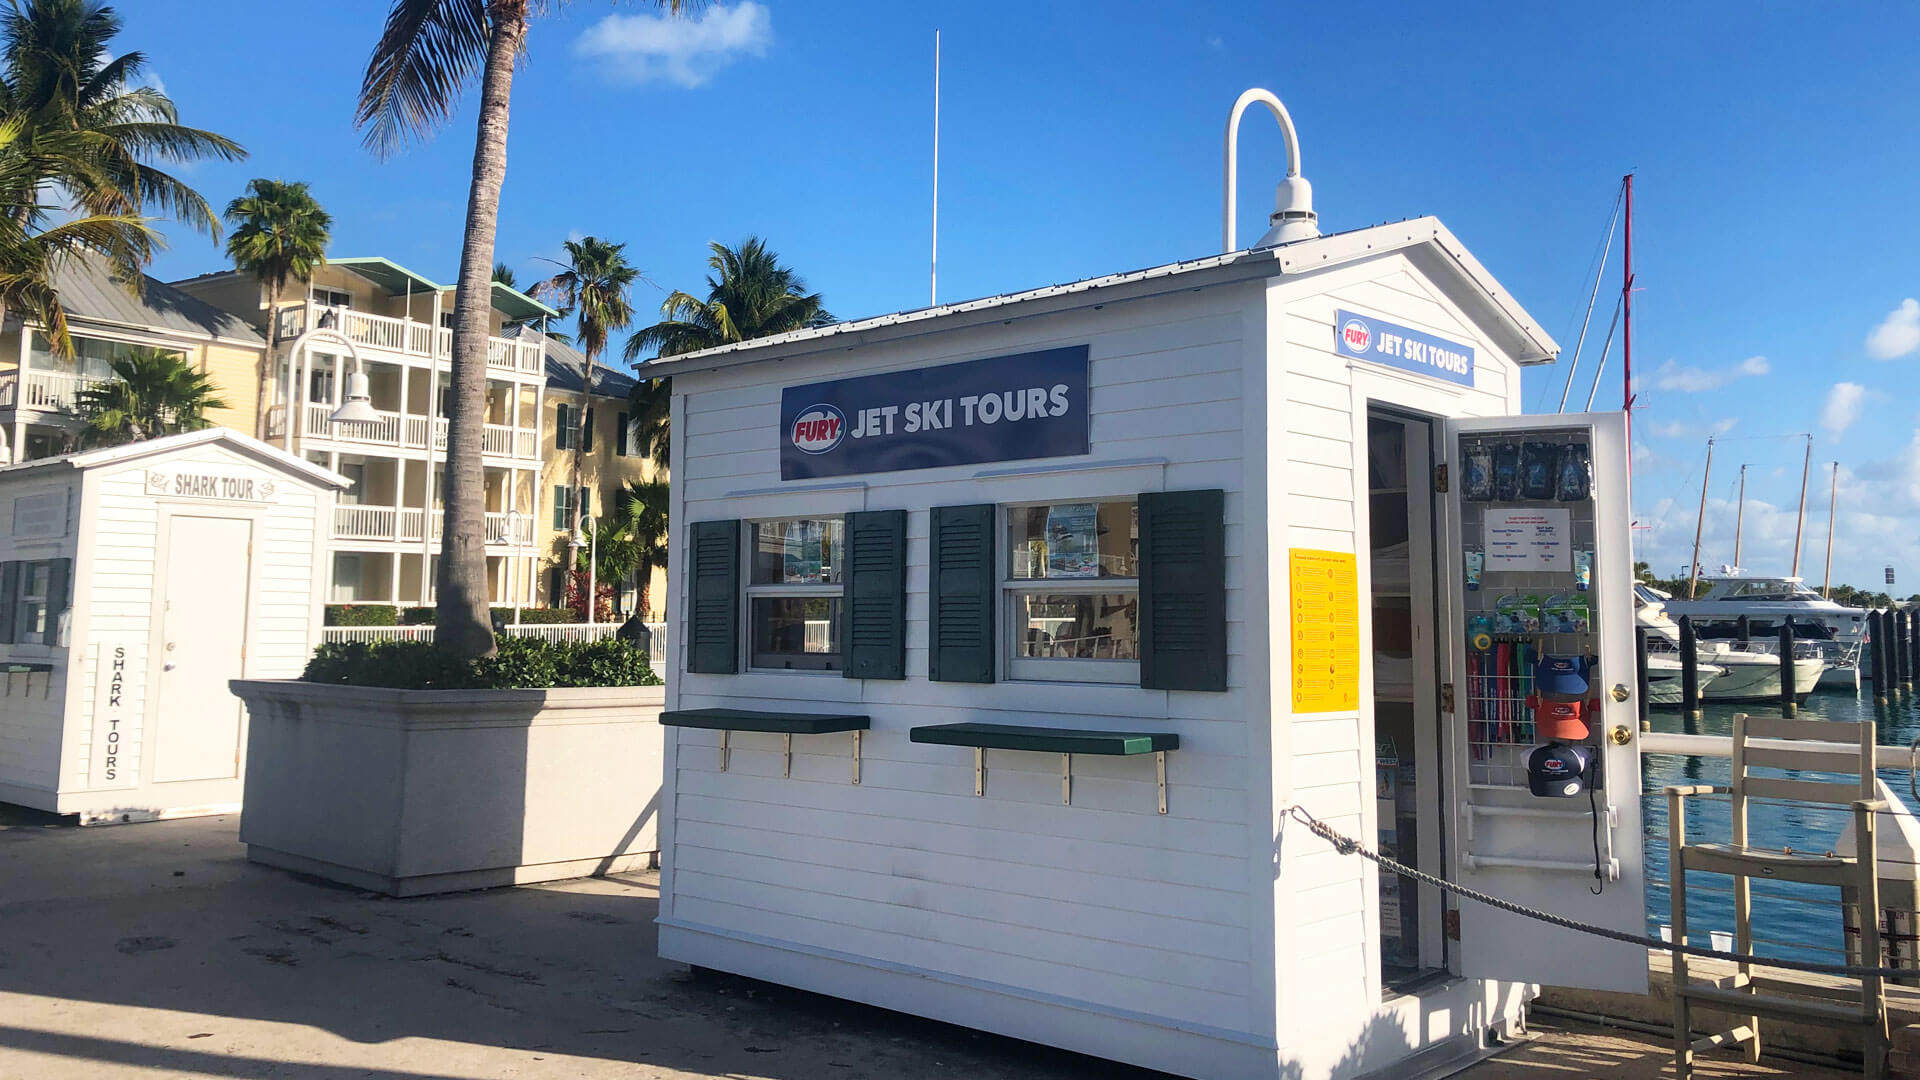 Picture of check-in booth with a sign at the top that has a Fury logo and the words 'JET SKI TOURS'. Underneath the sign are two windows with shutters and counters underneath. To the right, the booth has an open door where hats and other supples are hanging. To the left of the booth is a hotel with balconies. To the right of the booth and behind it is a marina.